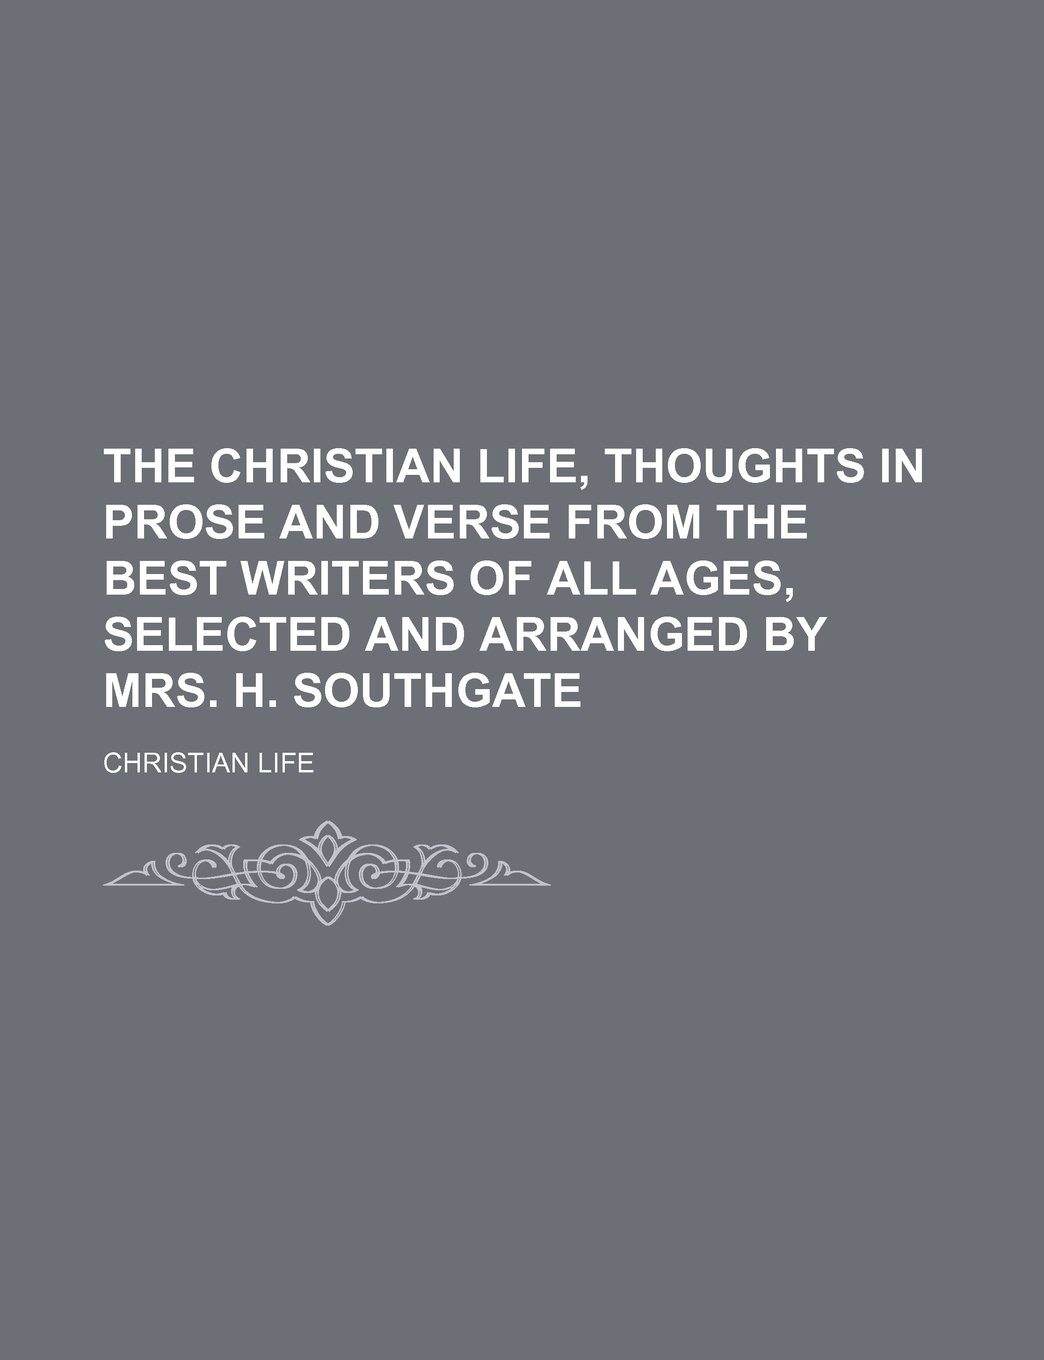 The Christian life, thoughts in prose and verse from the best writers of all ages, selected and arranged by mrs. H. Southgate PDF